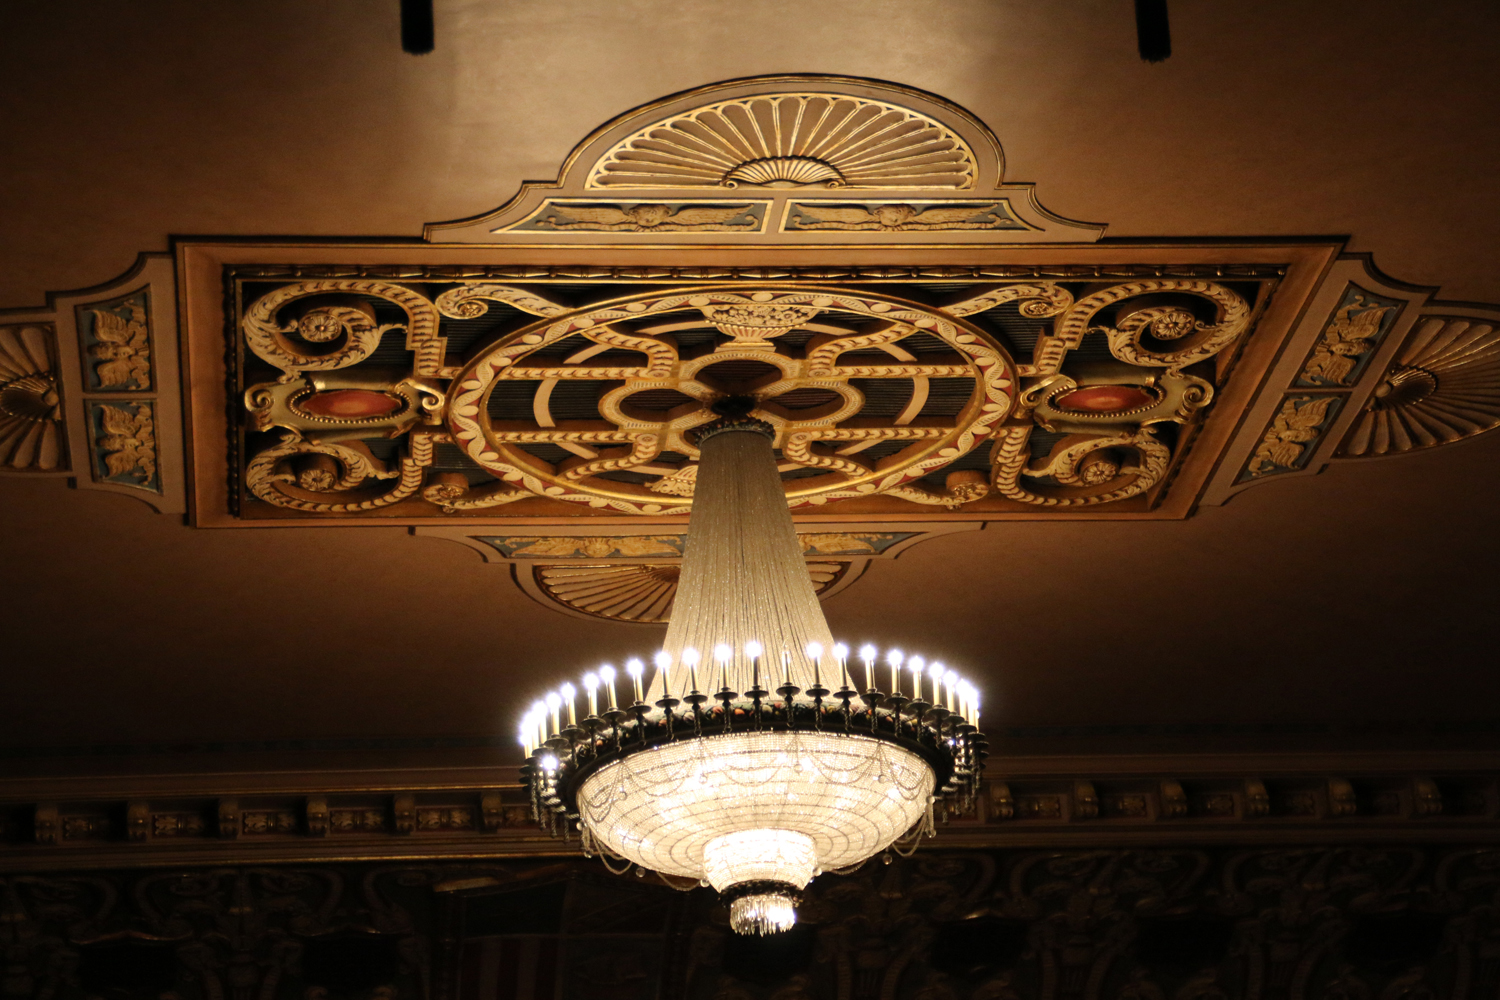 """The State Theatre is looking to replace its current incandescent light bulbs with LED bulbs and a dimmer switch as part of its """"Bright Future"""" year-end fundraiser campaign.  (Courtesy Photo)"""